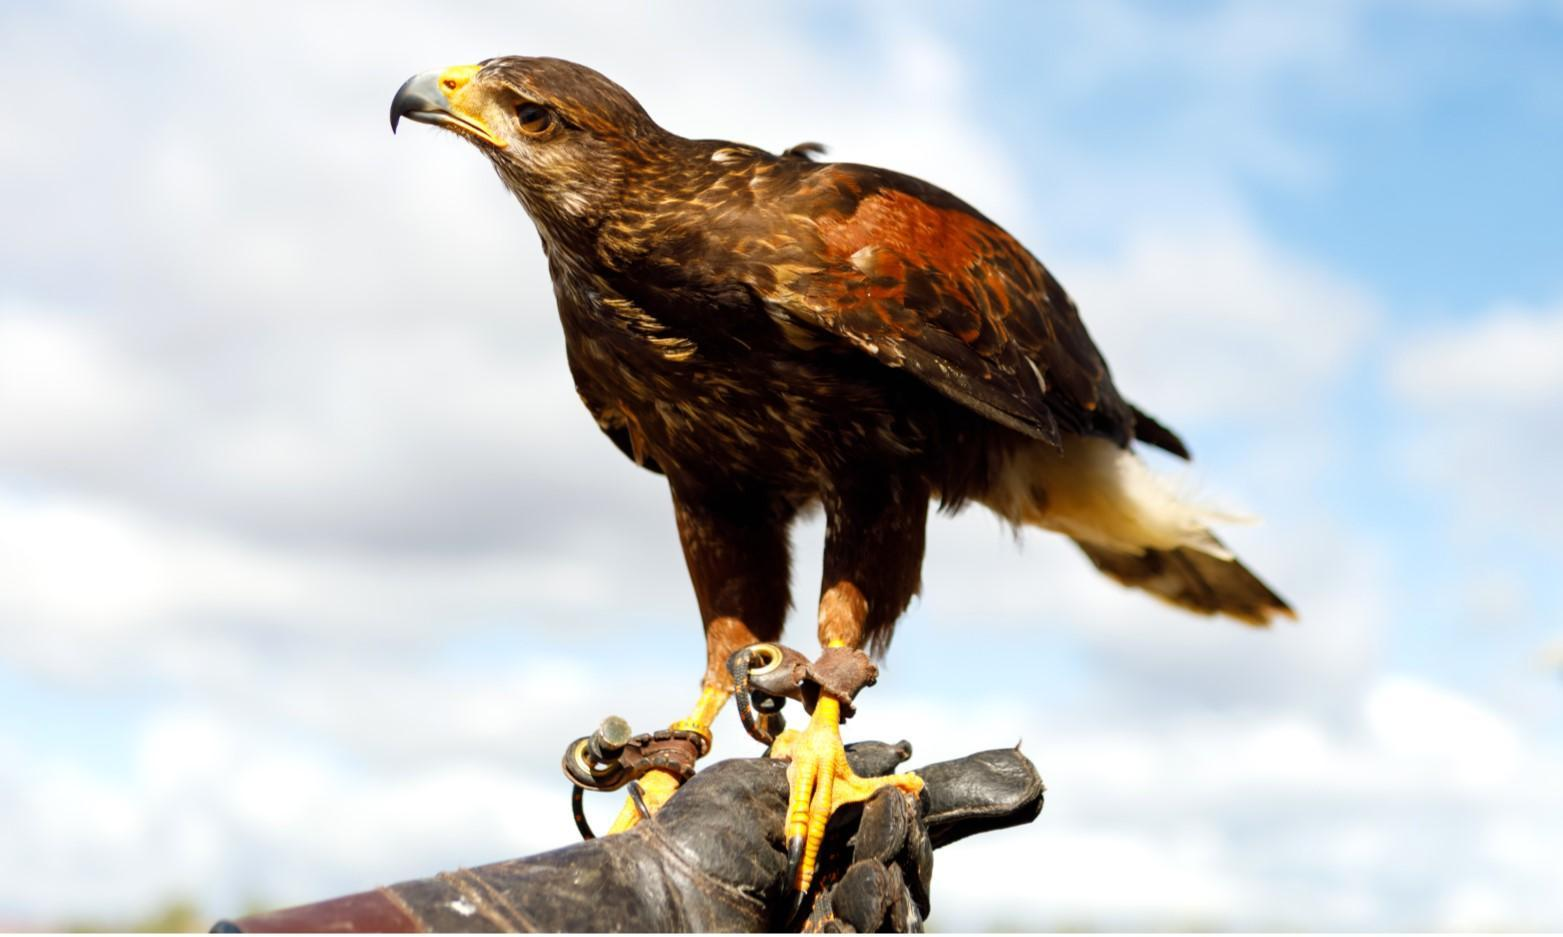 Kids' History Festival Birds of Prey at Laugharne Castle